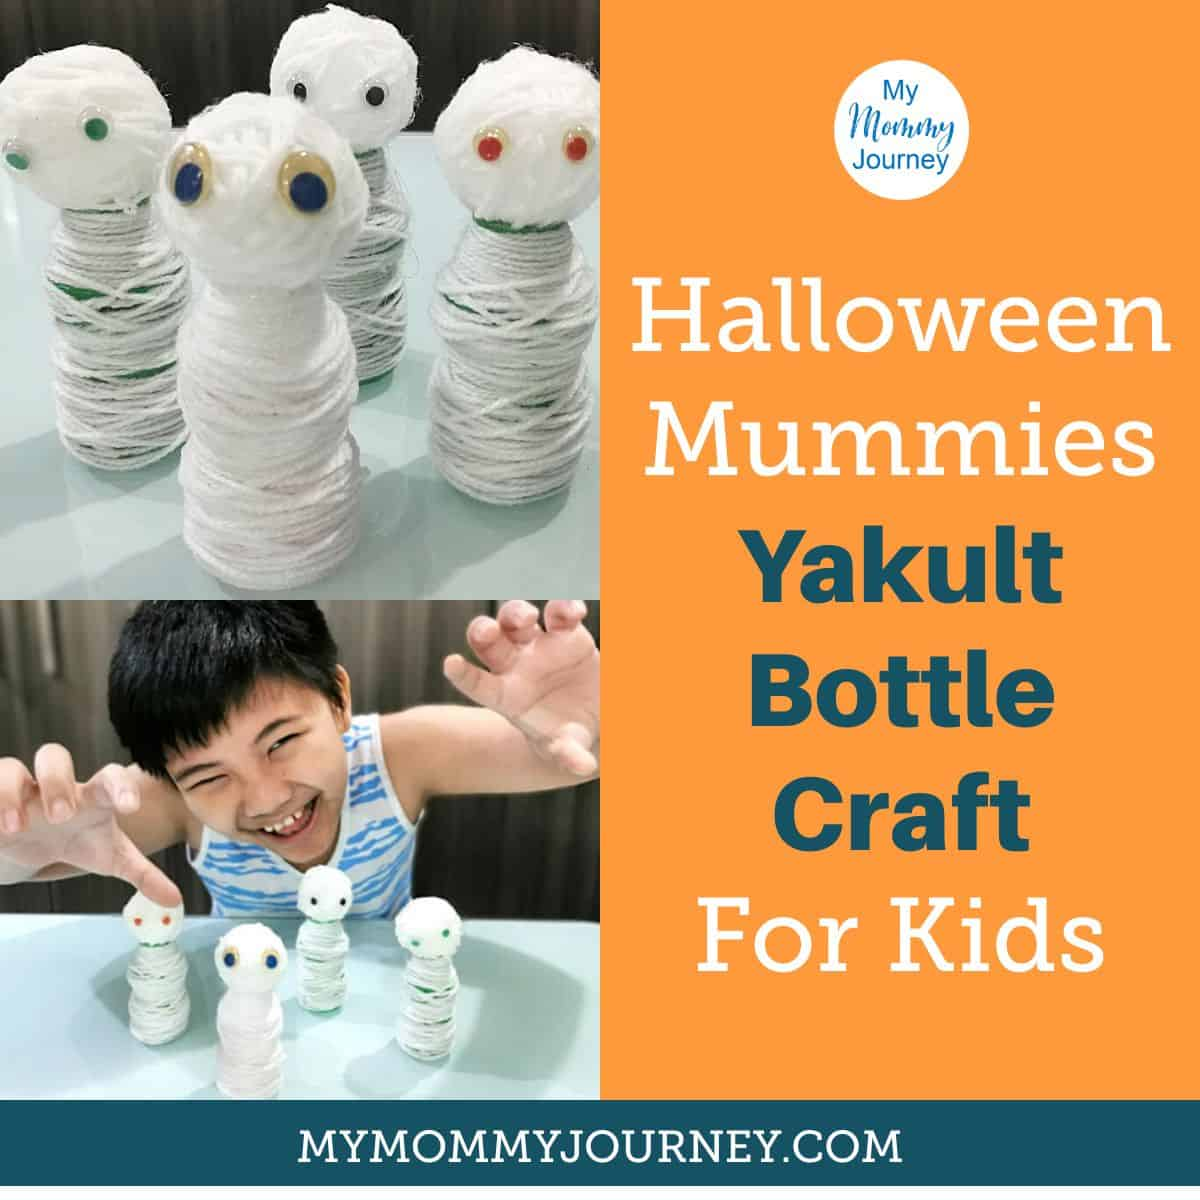 Halloween Mummies Yakult Bottle Crafts for Kids